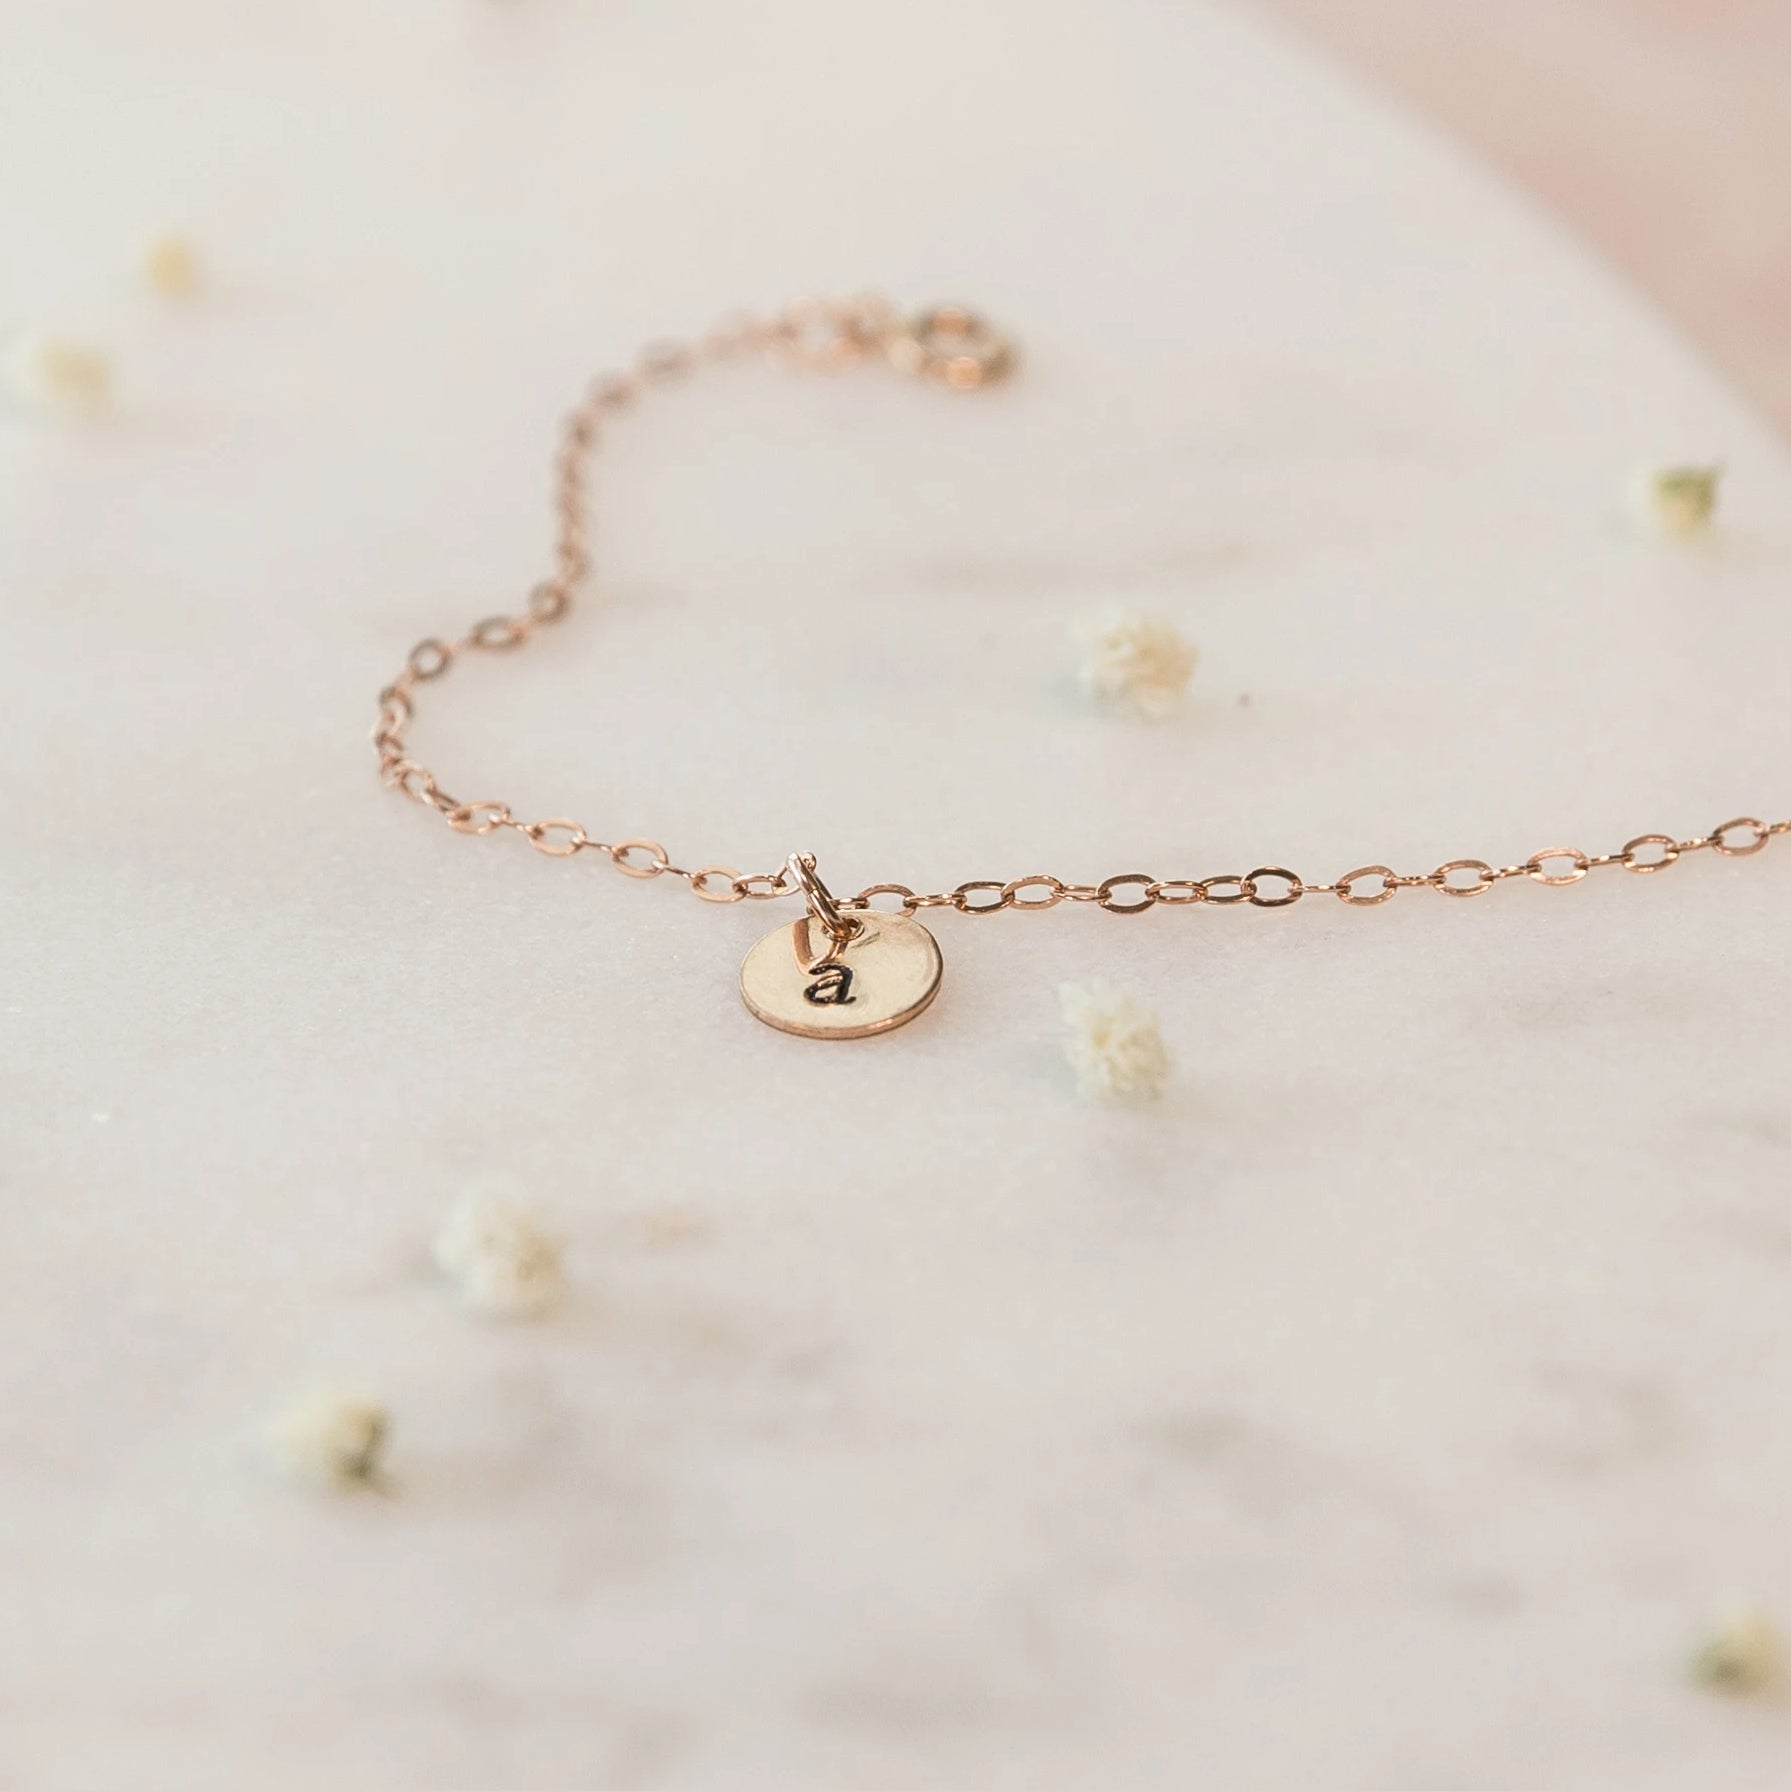 Women's gold or silver dainty personalized initial charm bracelet